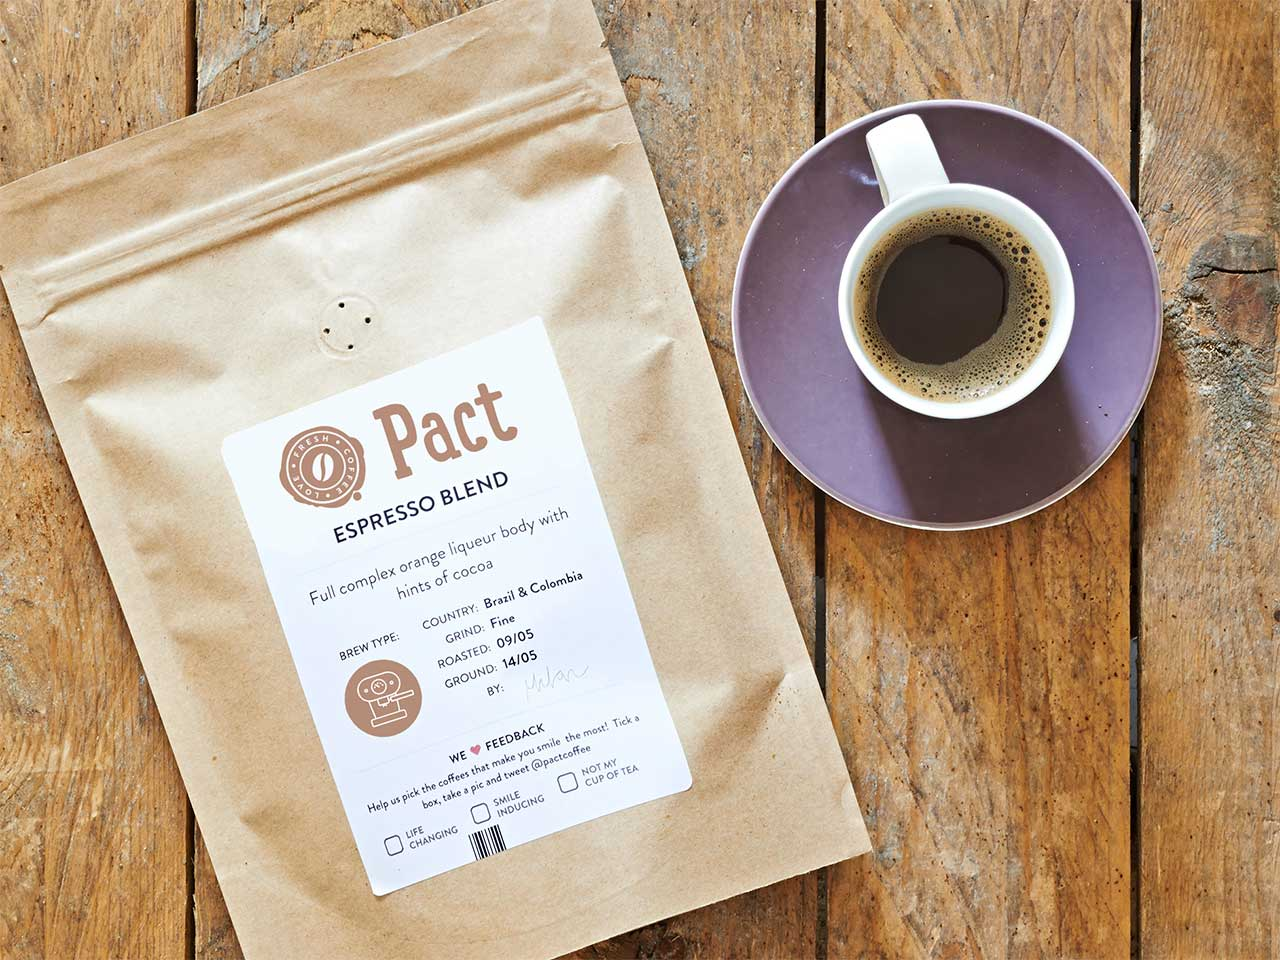 Pact Coffee offer